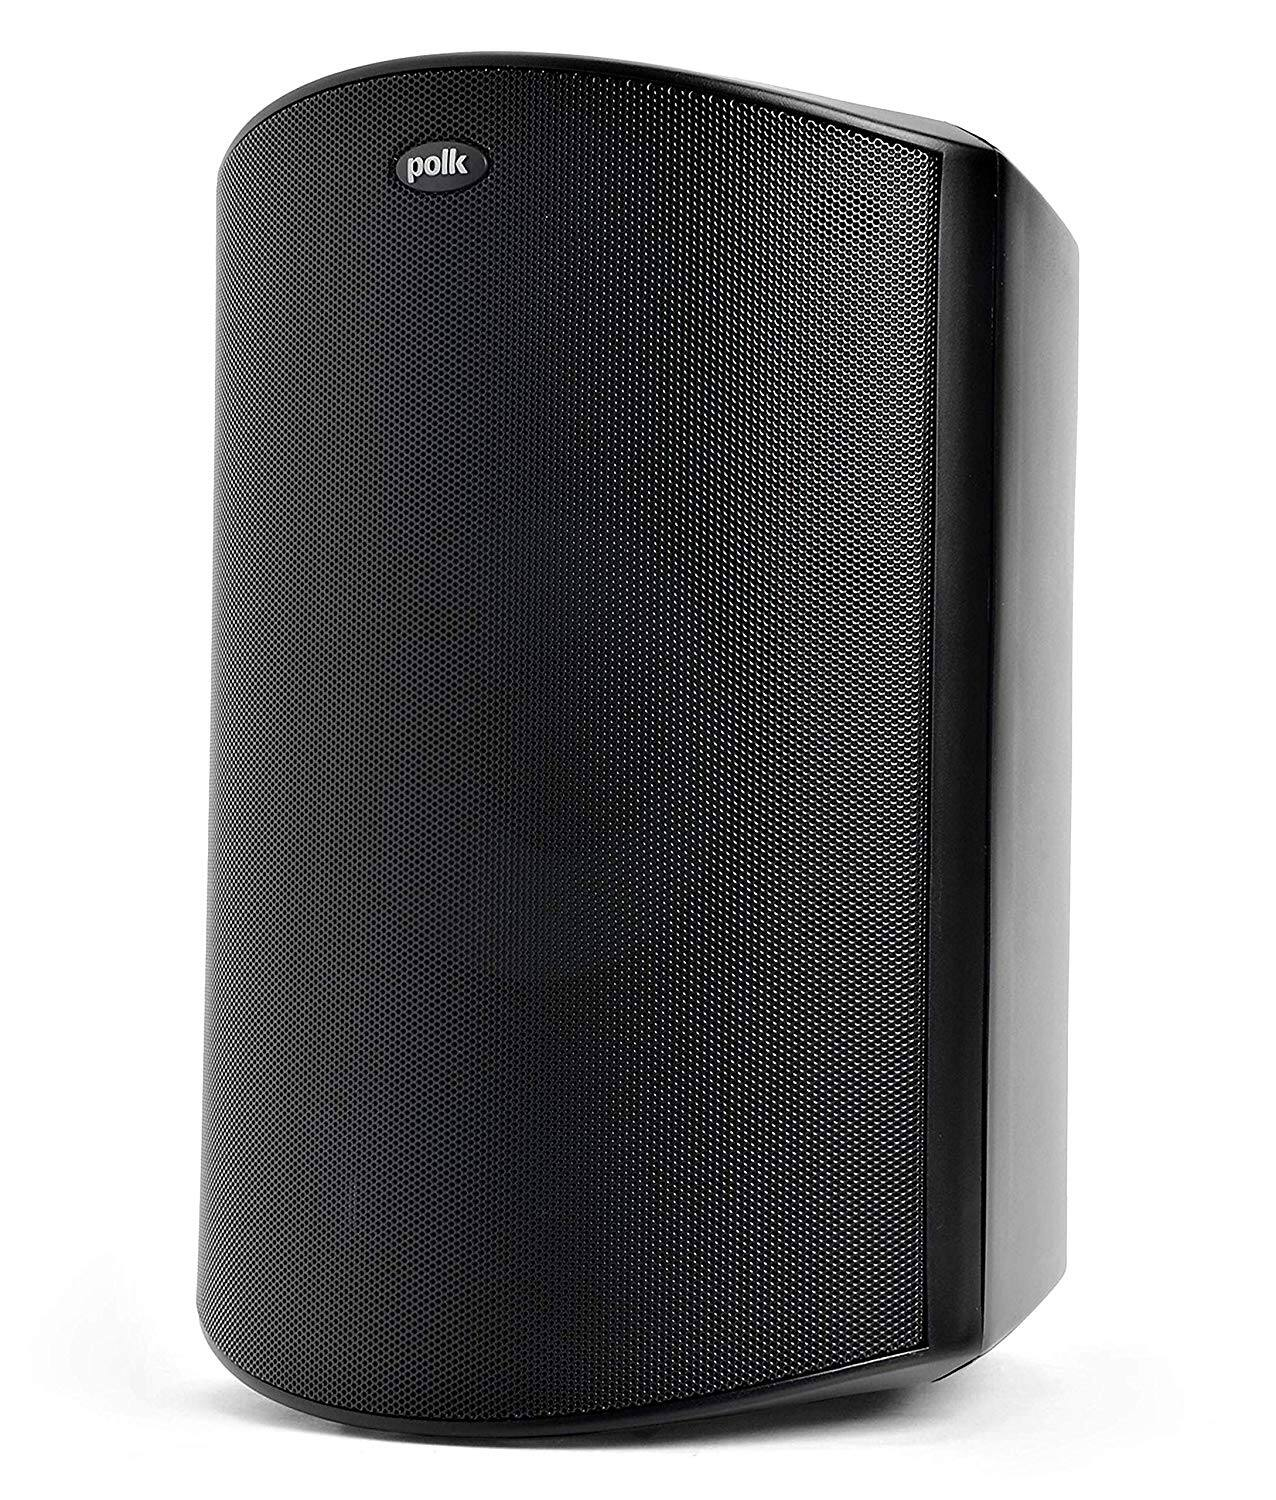 Polk Audio Atrium 8 SDI Outdoor Speaker (Black) Amazon $142.94  (Free Shipping)